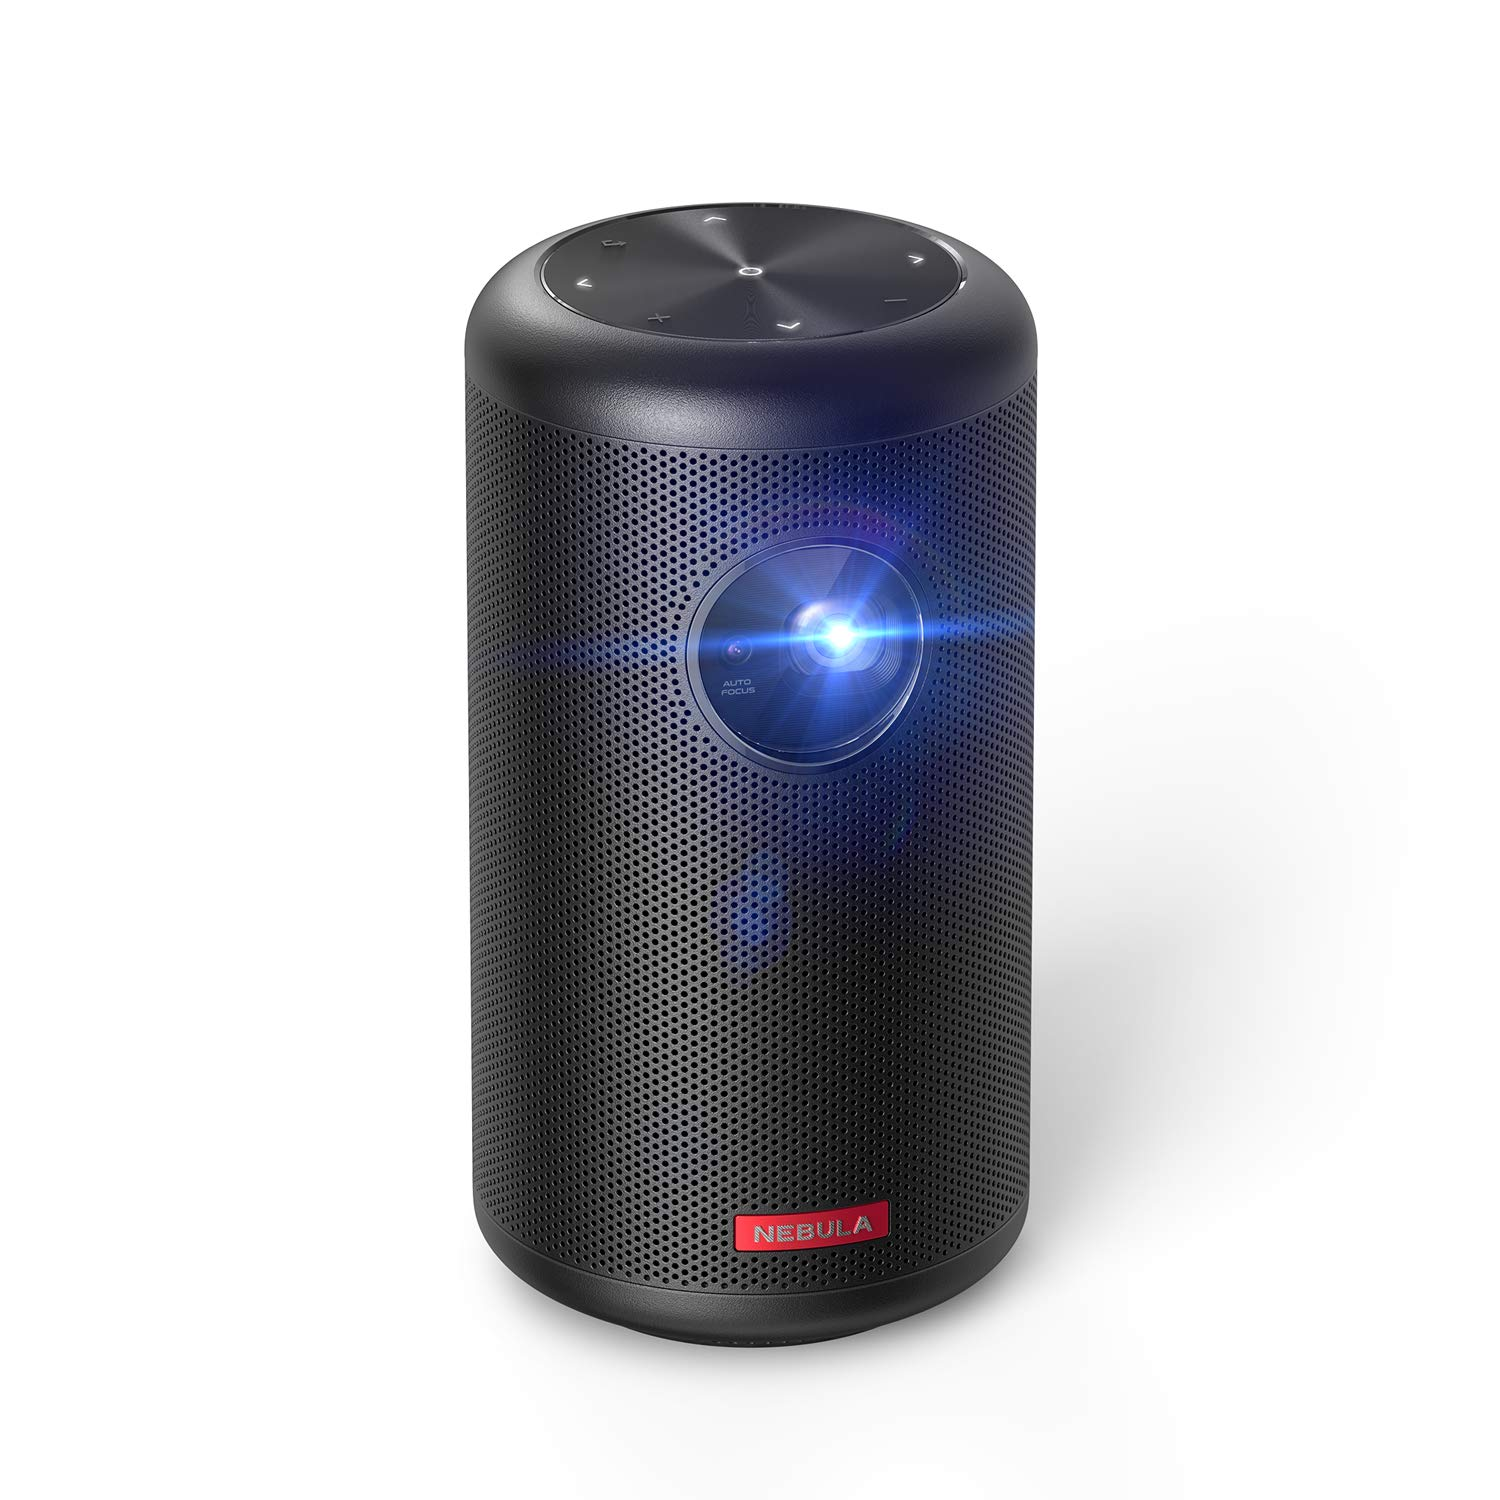 Nebula Capsule II Smart Mini Projector, by Anker, Palm-Sized Portable 200 ANSI lm 720p HD Pocket Cinema with Wi-Fi, DLP, 8W Speaker, 100'' Picture, 3, 600+ Apps, and 2.5-Hour Video Playtime